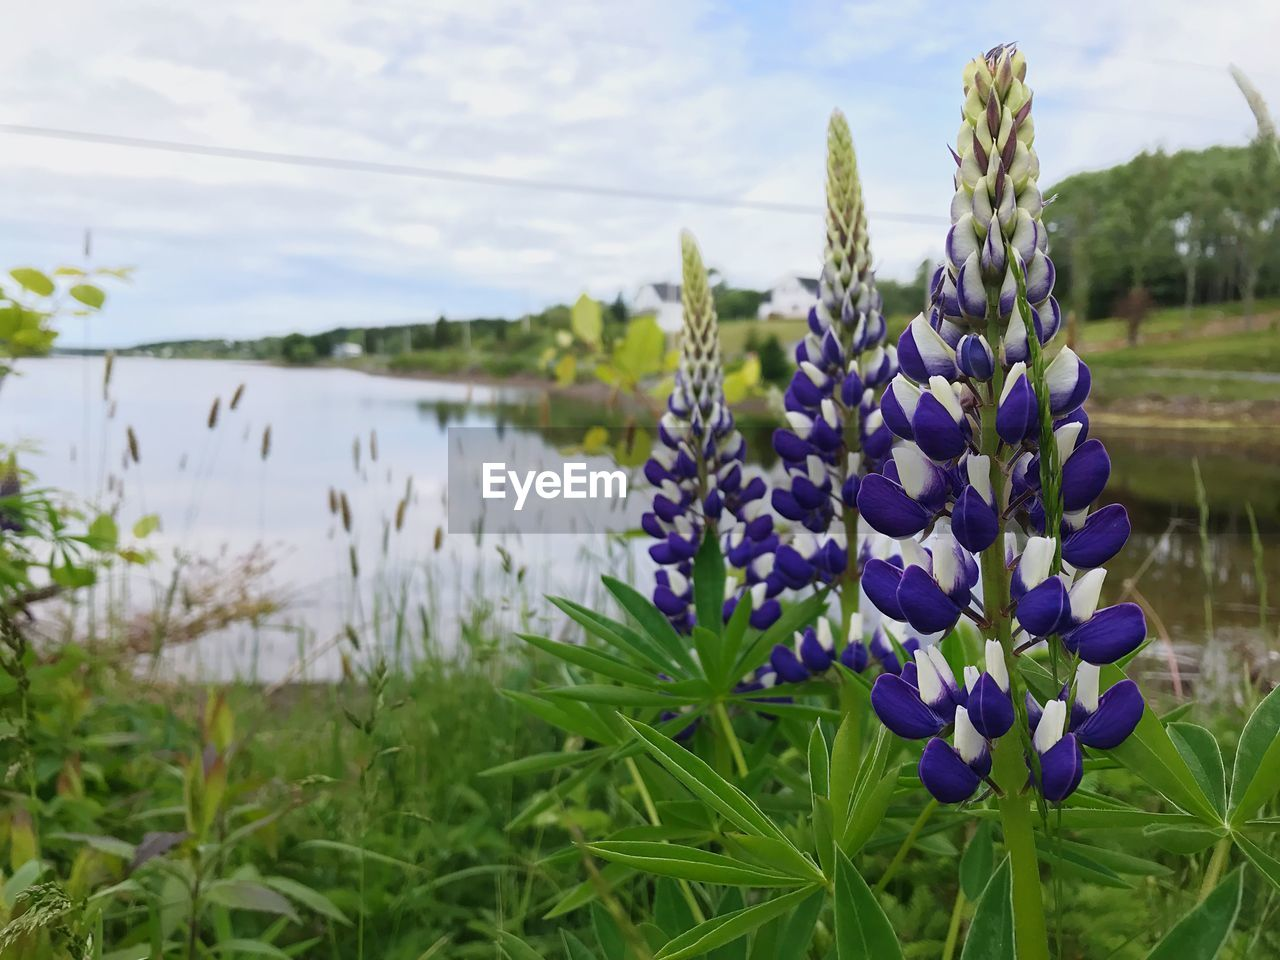 plant, flowering plant, flower, beauty in nature, growth, purple, vulnerability, fragility, freshness, nature, focus on foreground, land, close-up, field, sky, no people, tranquility, day, water, outdoors, lavender, flower head